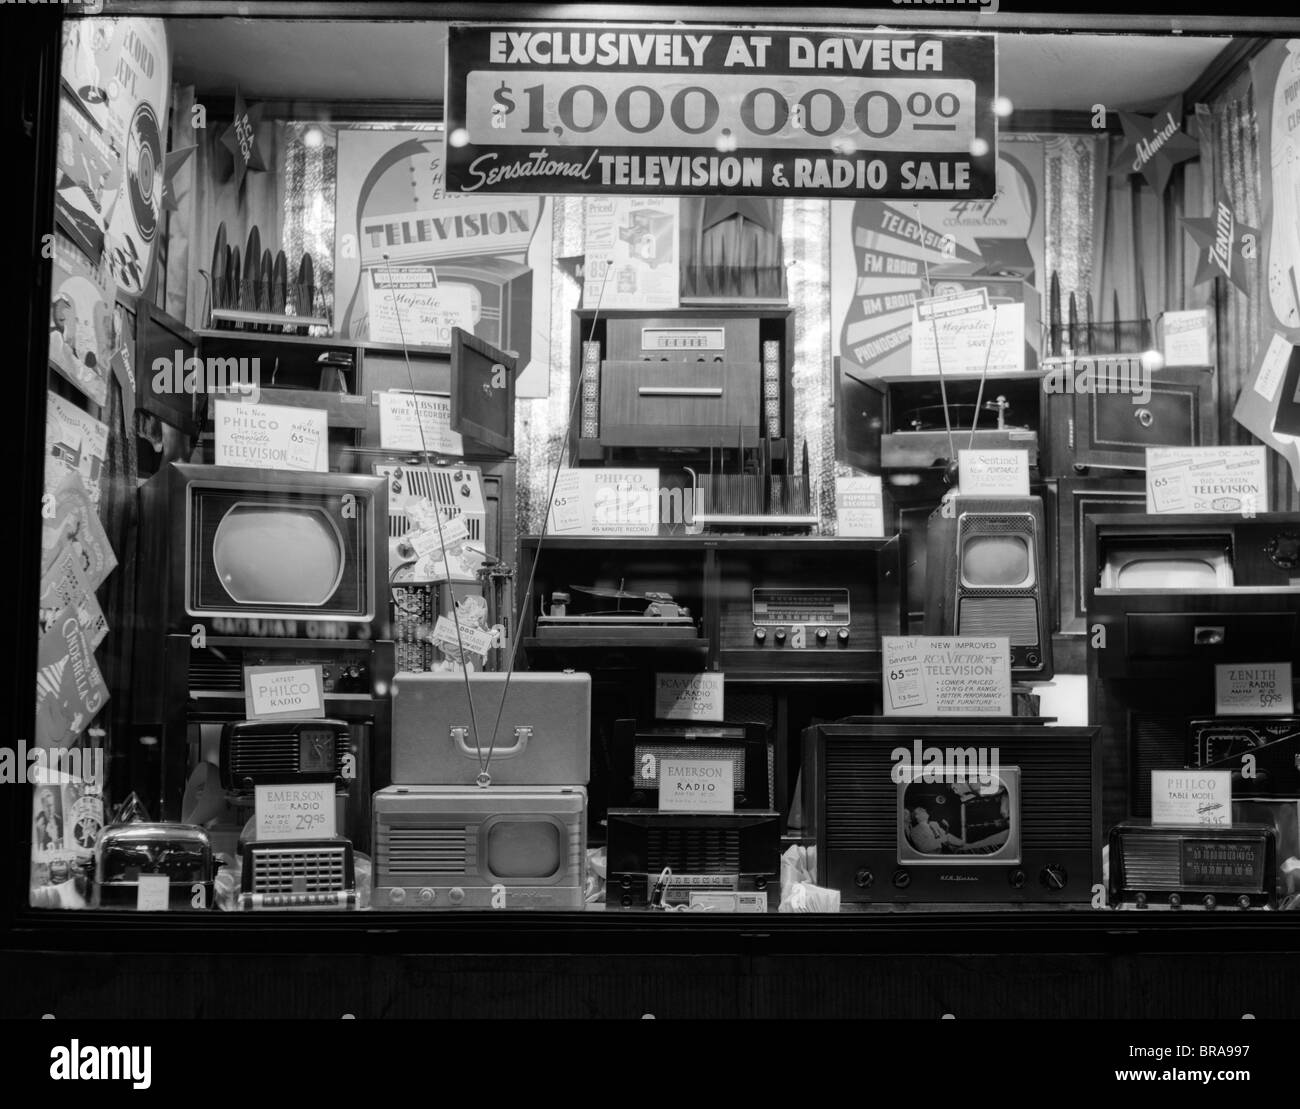 1940s WINDOW OF STORE SELLING RADIOS AND TELEVISIONS ADVERTISING A MILLION DOLLAR SALE - Stock Image